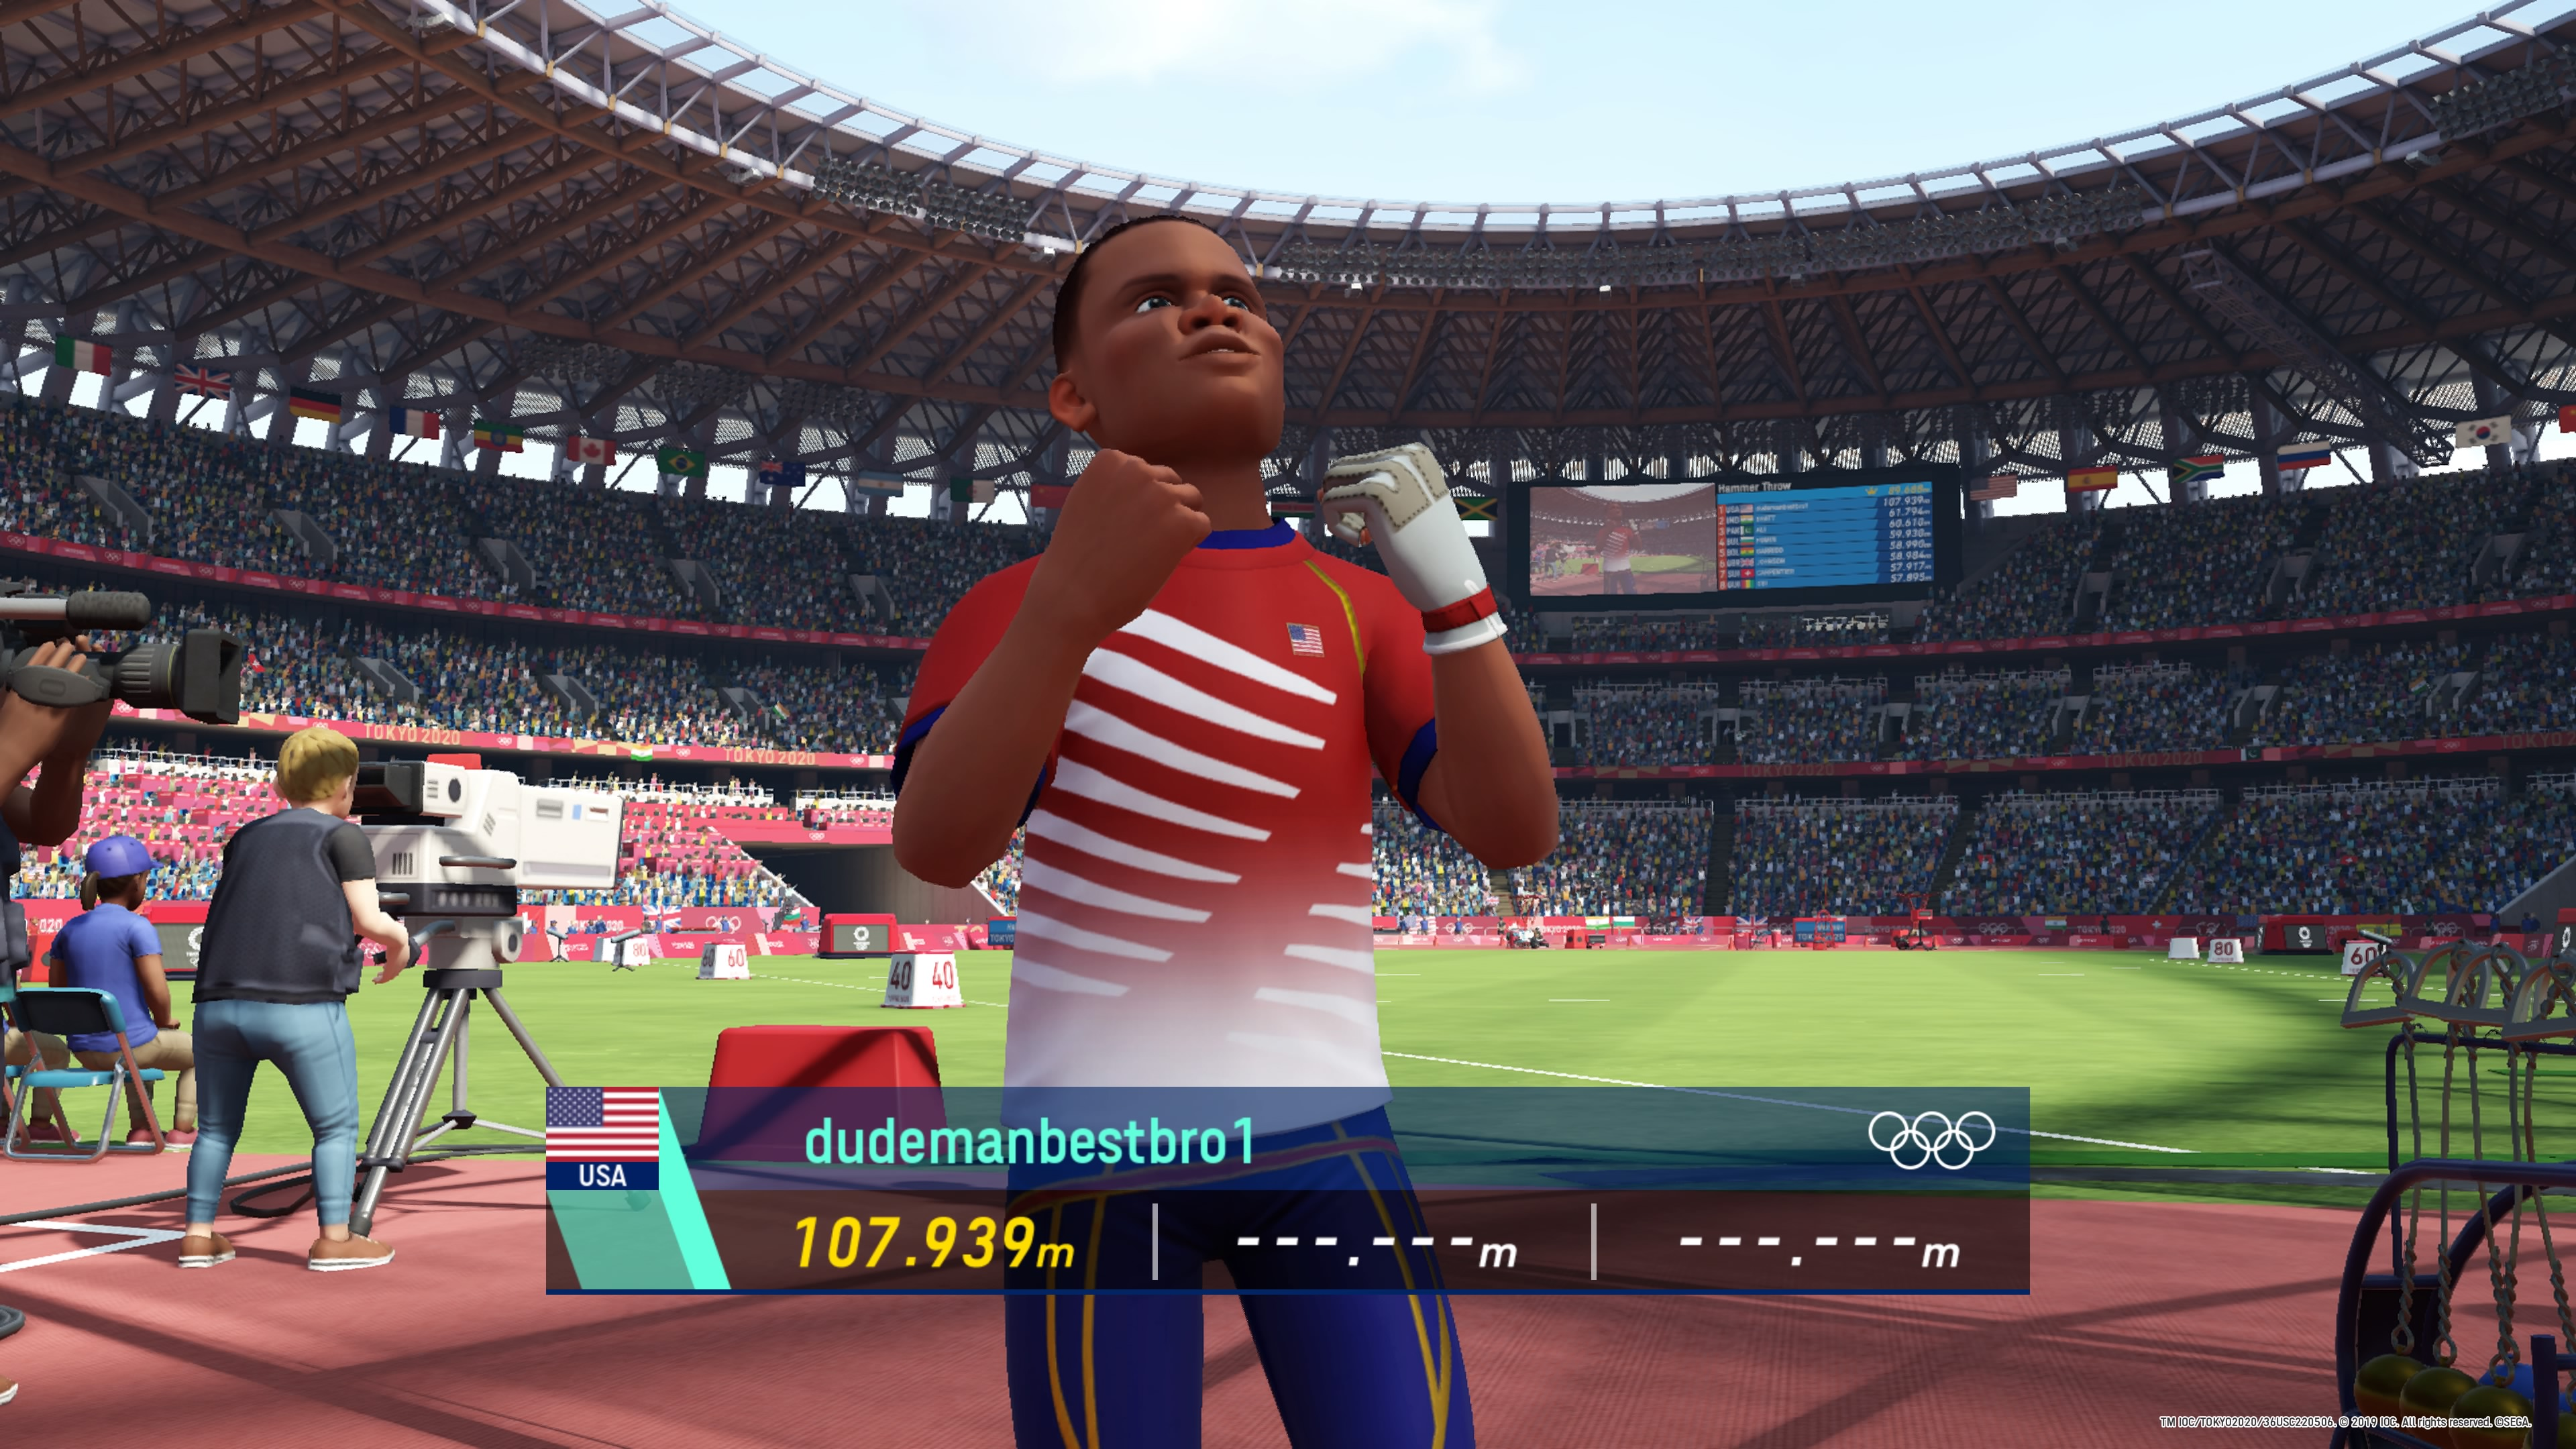 A stylized hammer throw athlete pumps his fists after a very strong round